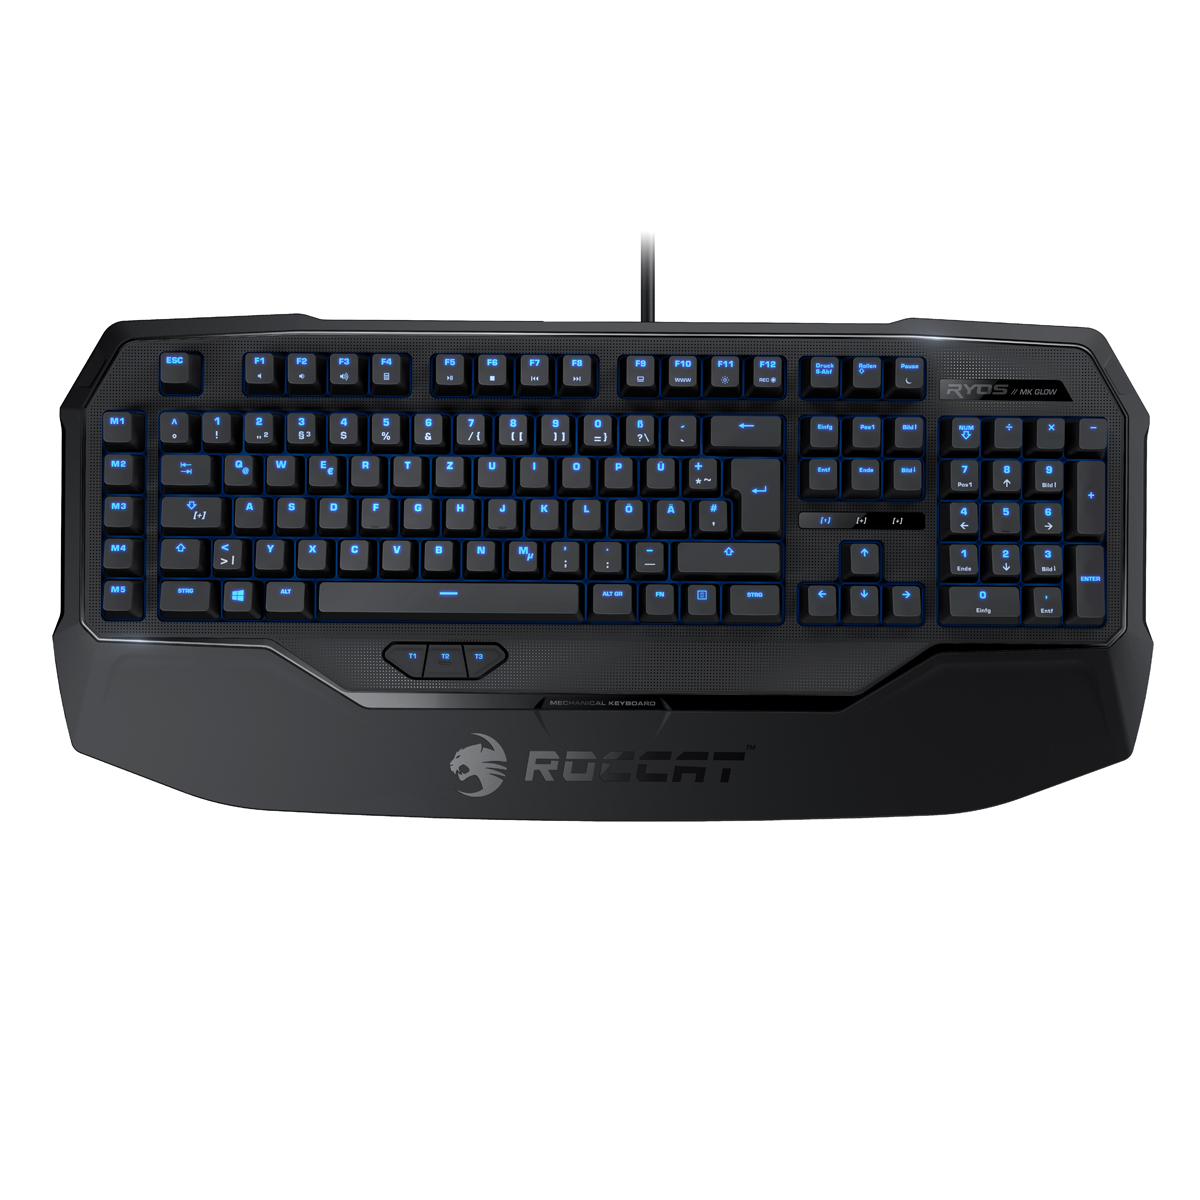 roccat ryos mk glow mx black clavier pc roccat sur ldlc. Black Bedroom Furniture Sets. Home Design Ideas